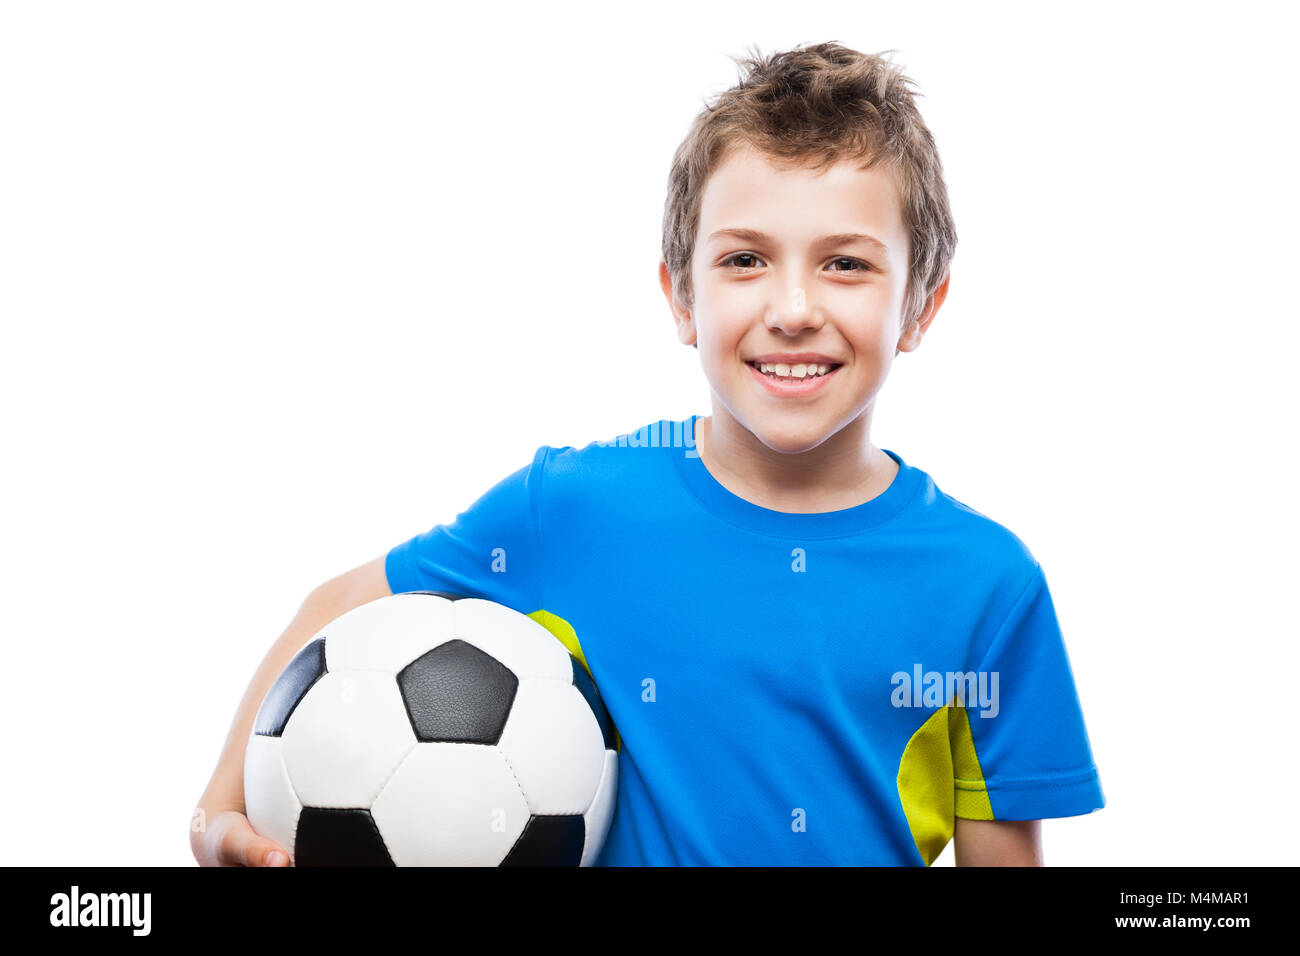 4a9f41972 Handsome smiling child boy holding soccer ball Stock Photo ...